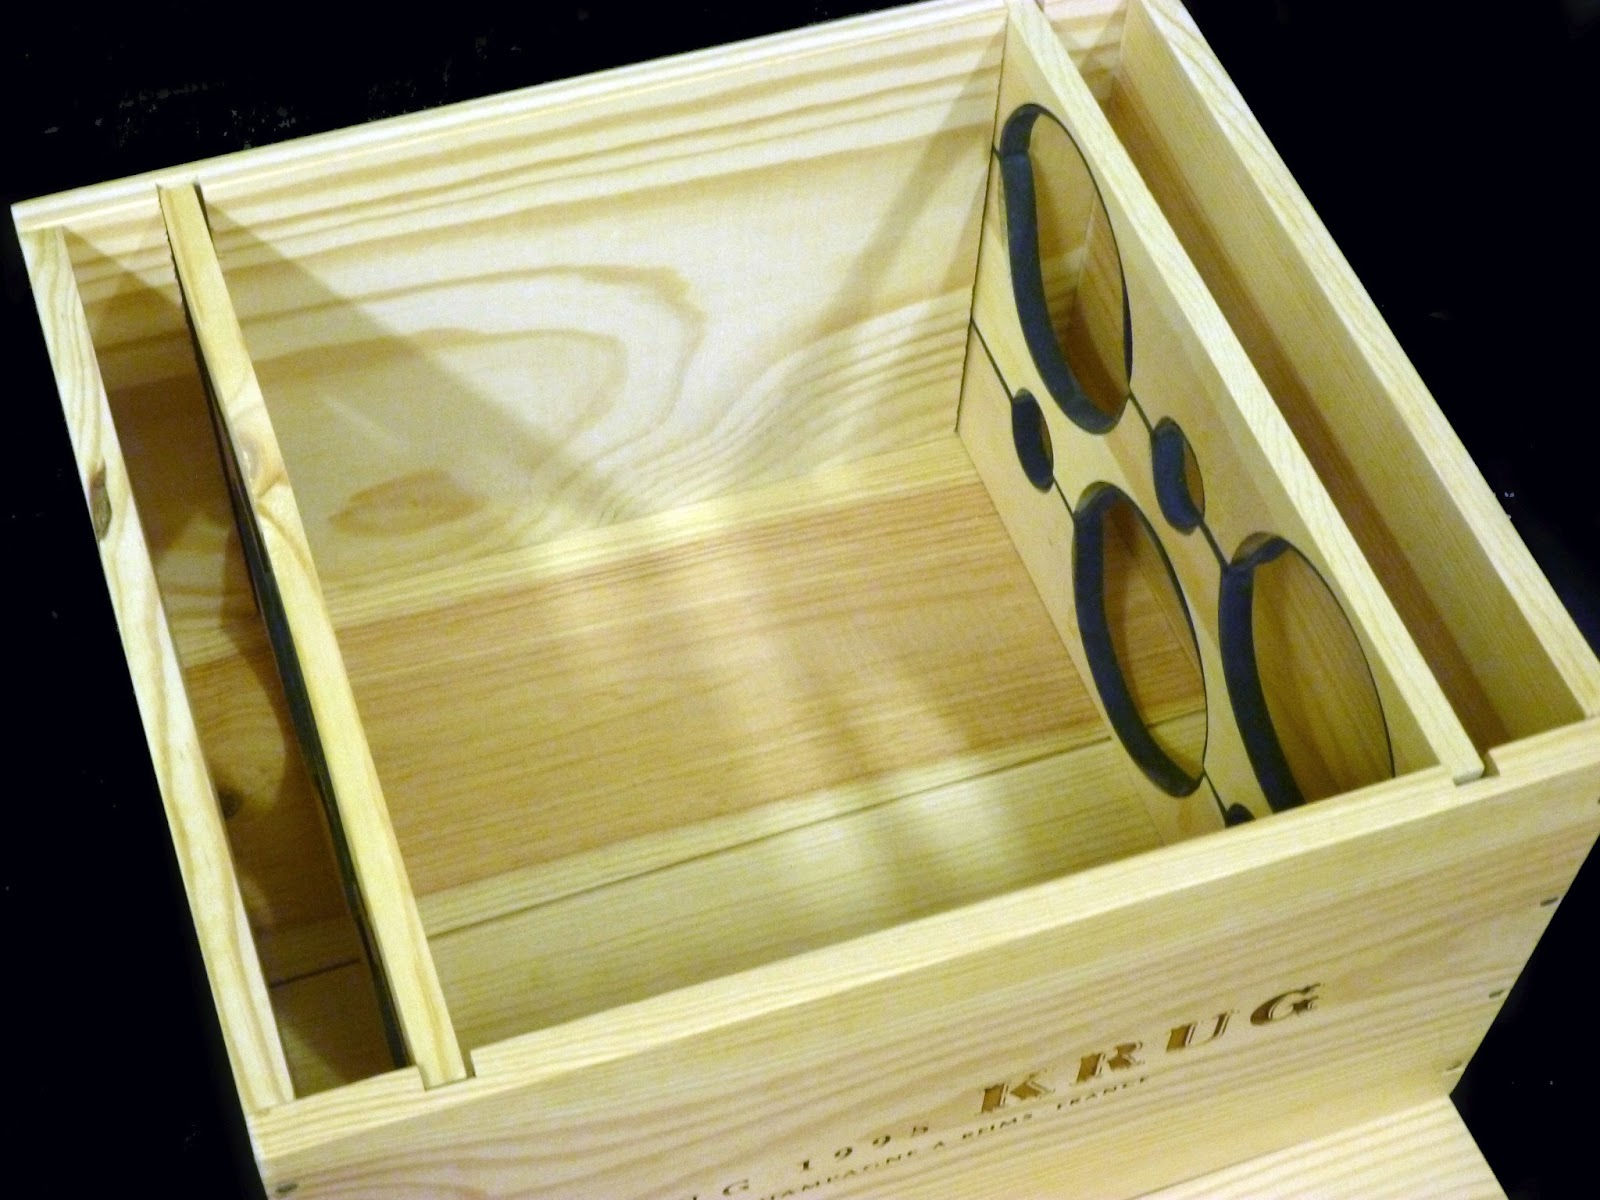 Wooden Wine Boxes & Wine Crates